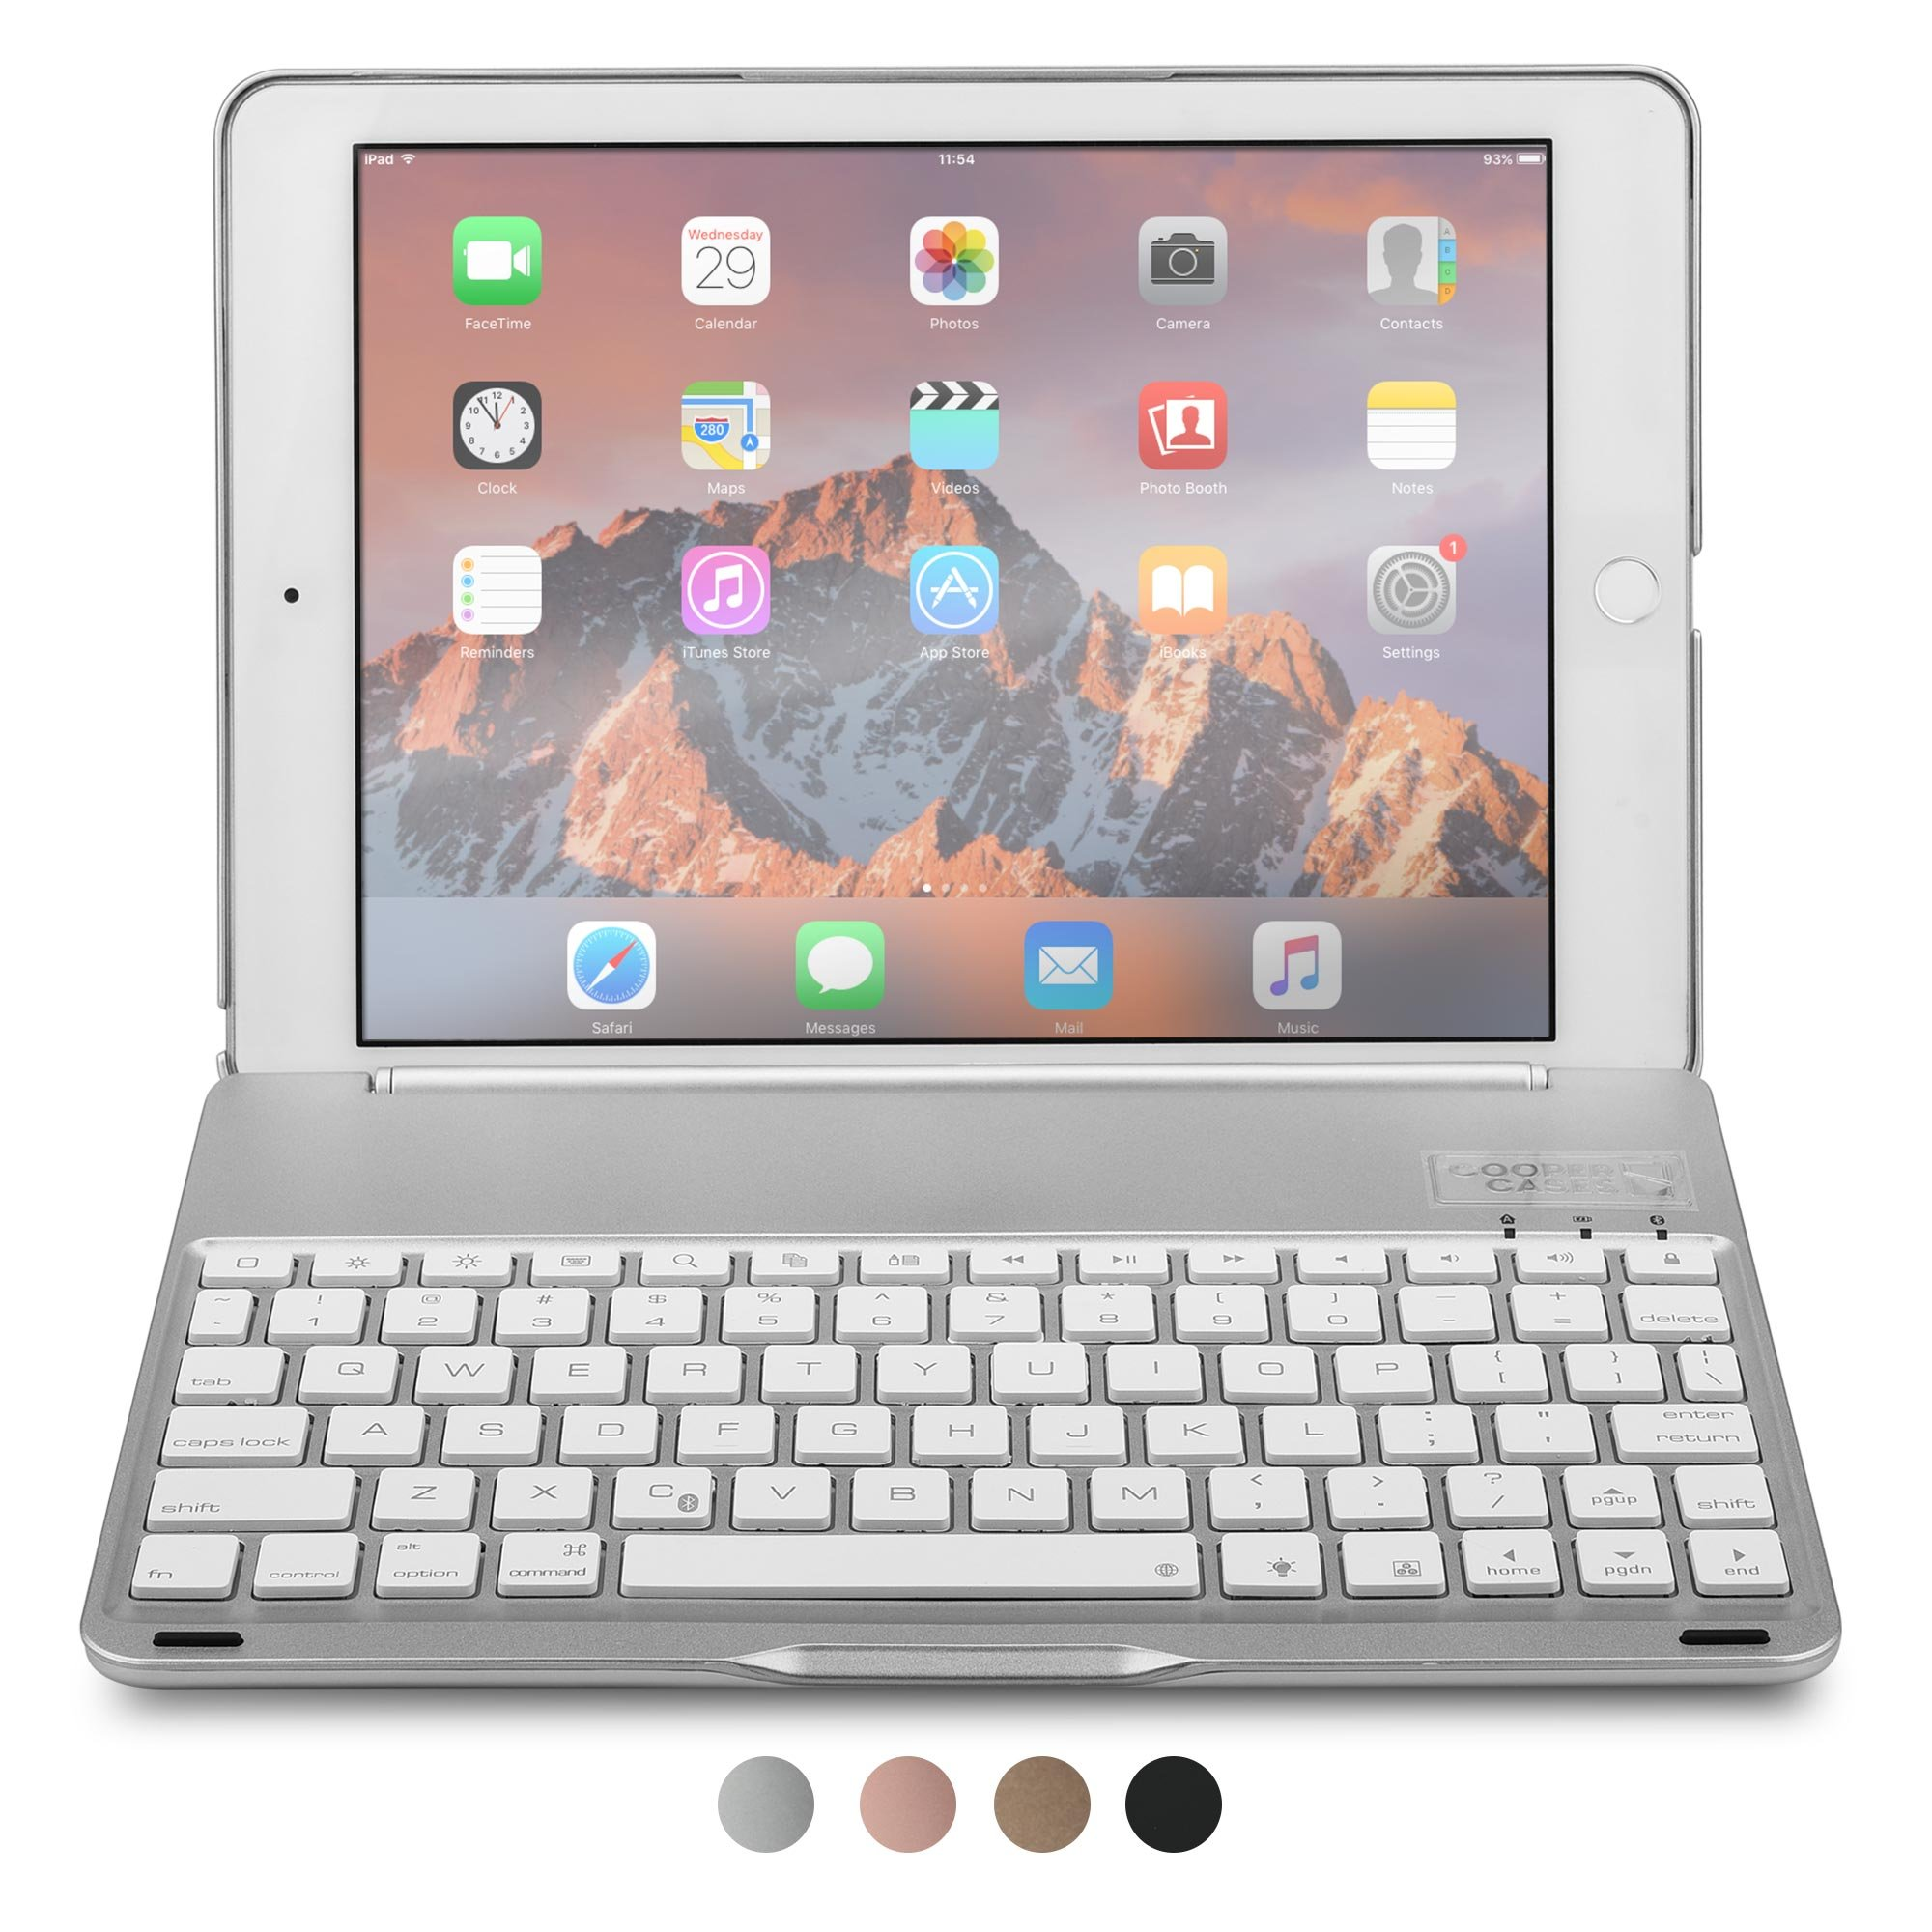 iPad Air 2 Keyboard case, COOPER NOTEKEE F8S Backlit LED Bluetooth Wireless Rechargeable Keyboard Portable Laptop Macbook Clamshell Clamcase Cover with 7 Backlight Colors for Apple iPad Air 2 (Silver)